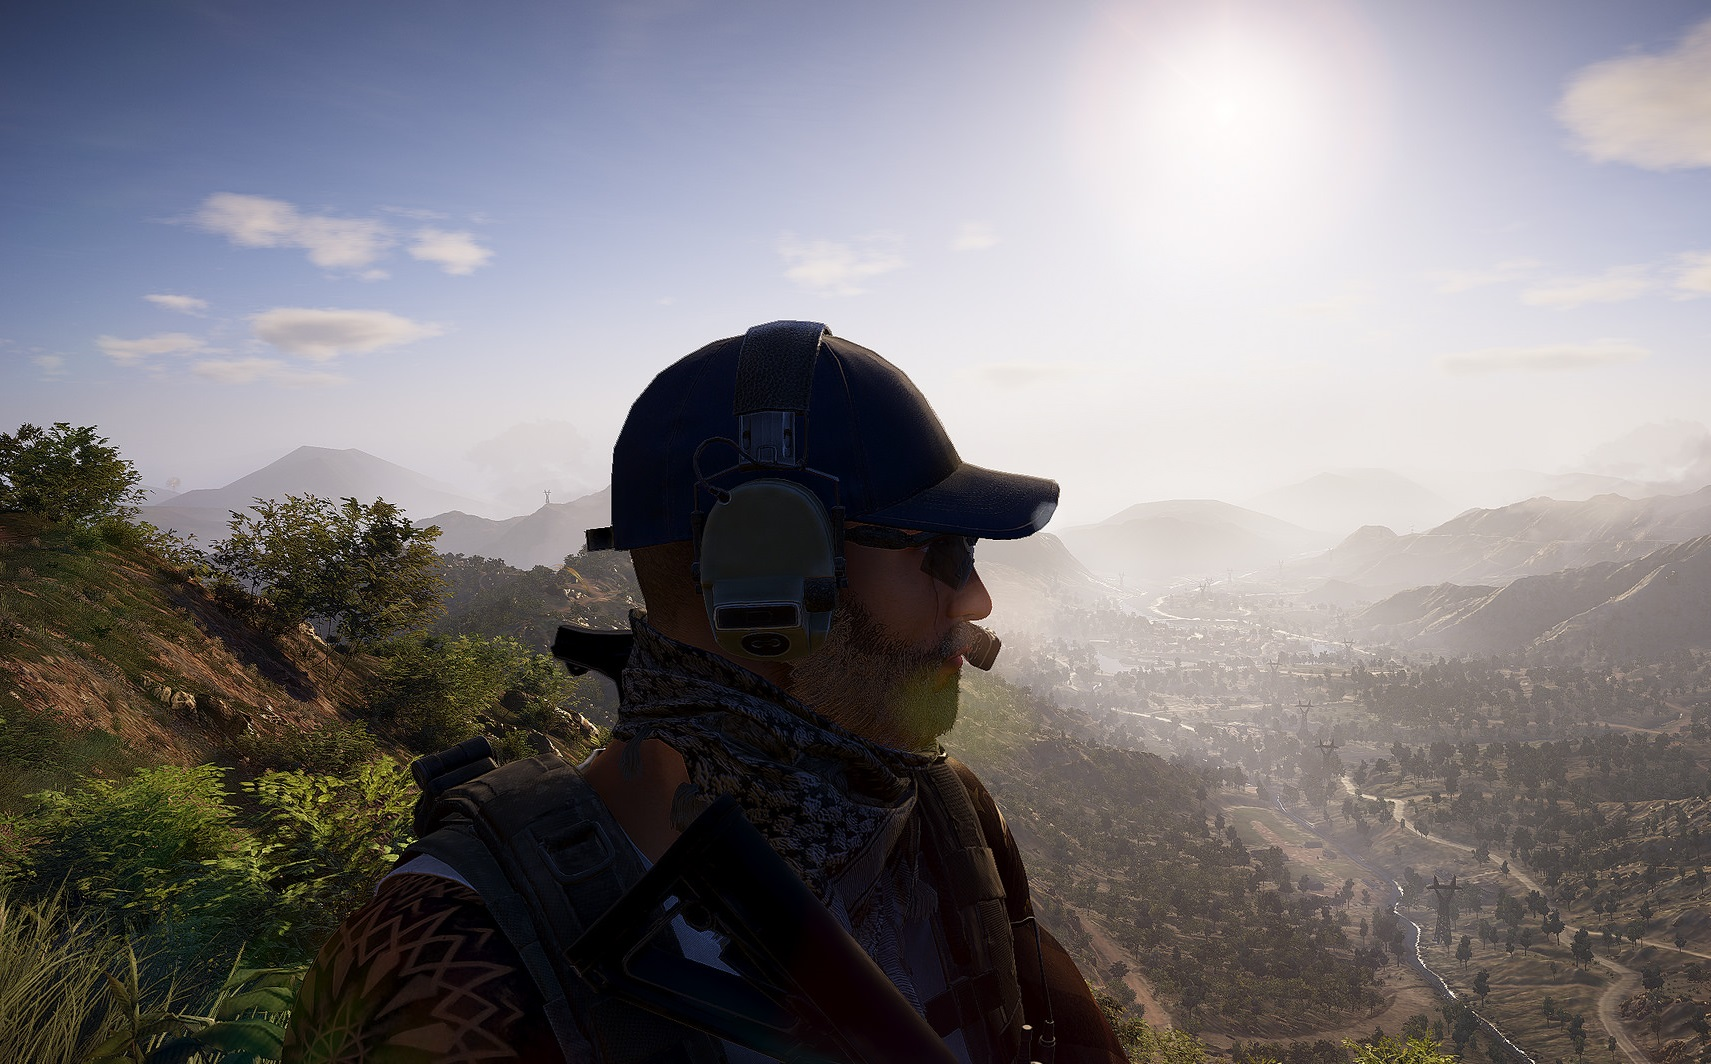 Ghost Recon: Wildlands Tier 1 mode guide - best missions for fast XP